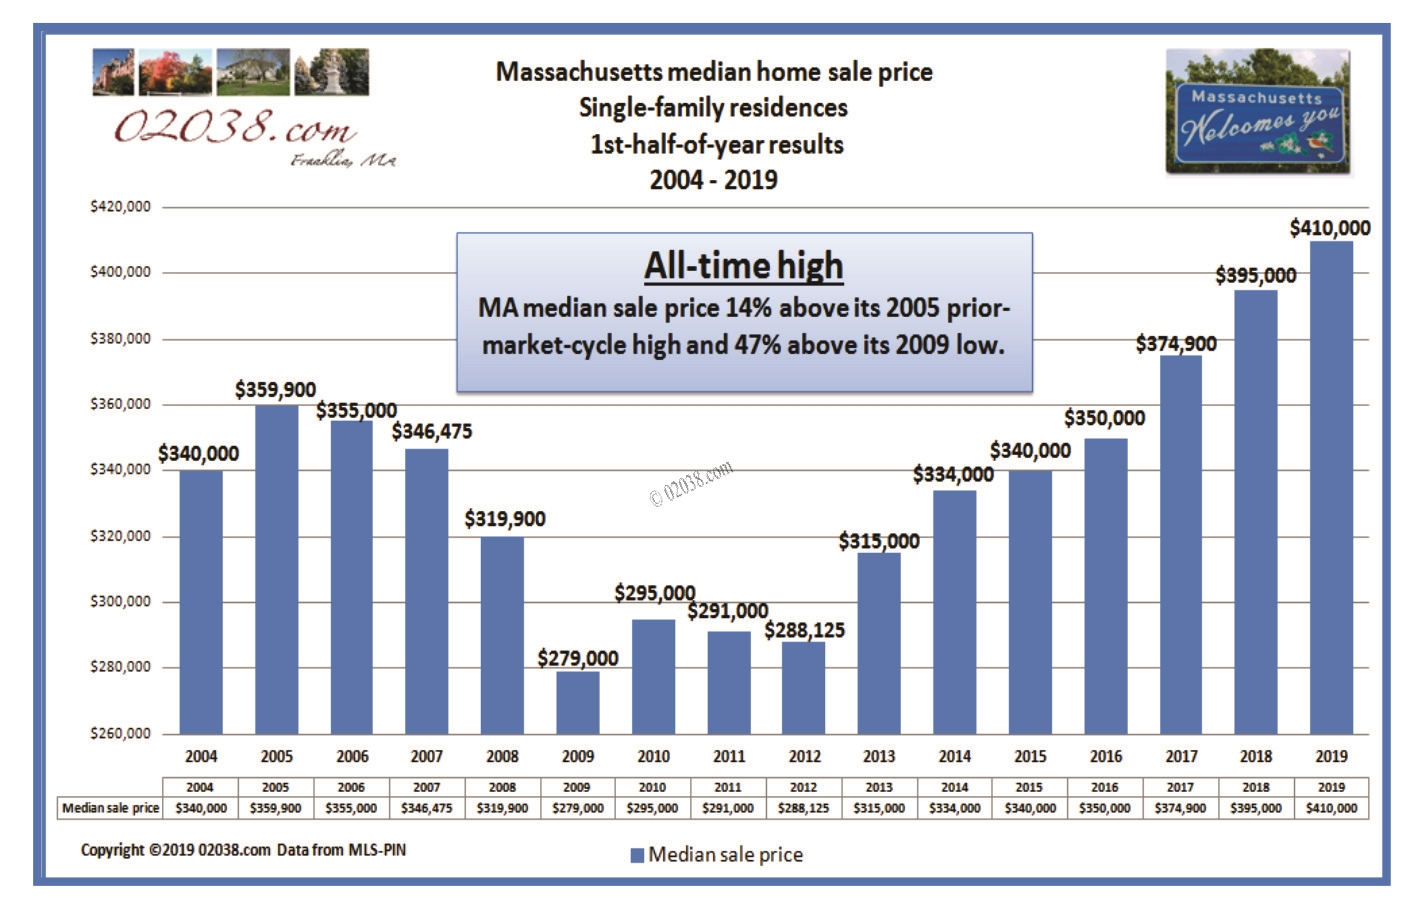 MA home prices 2019